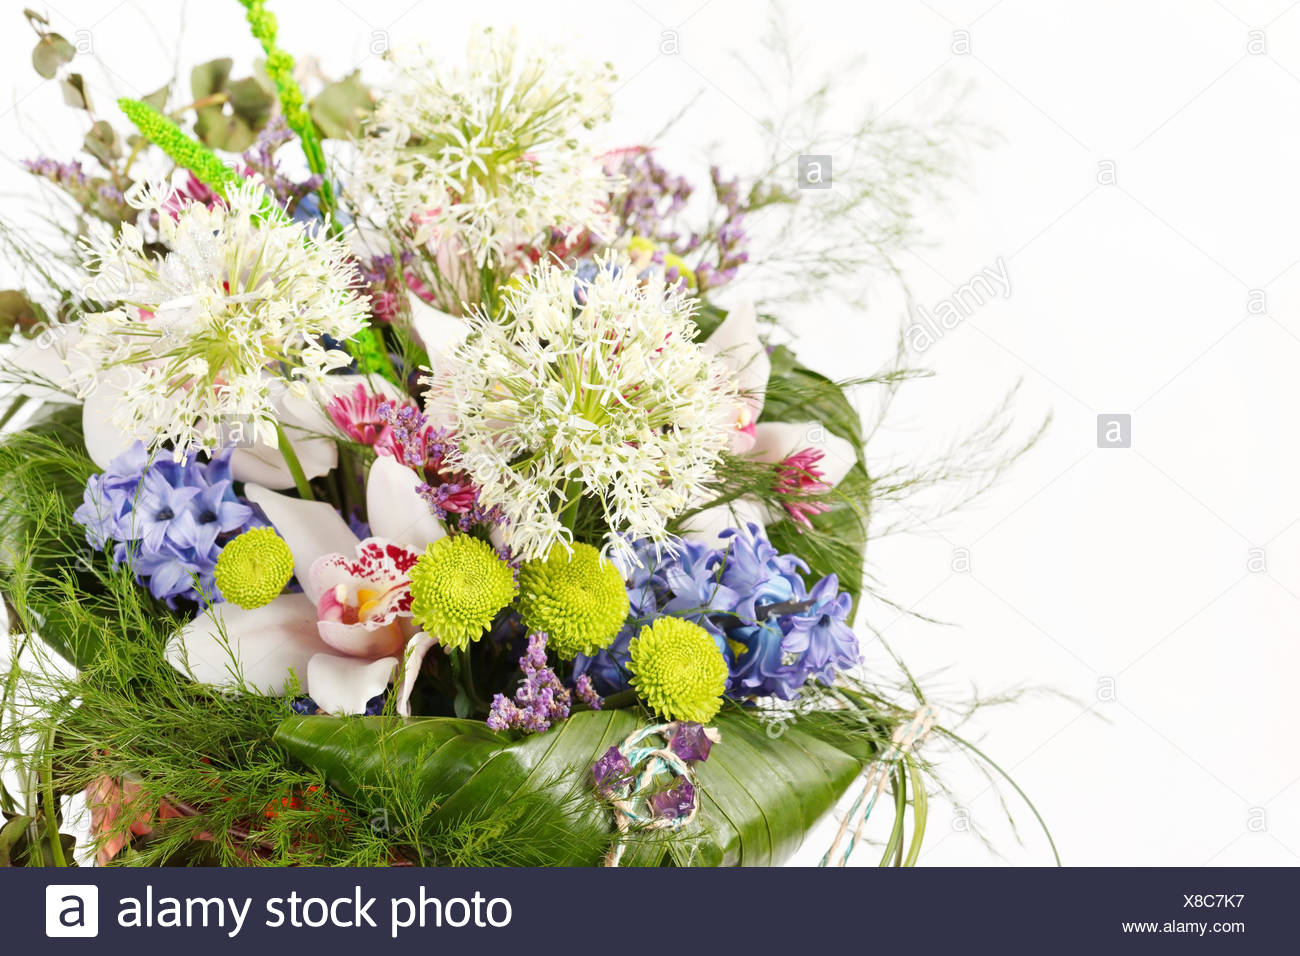 Beautiful flowers in the basket stock photo 280552587 alamy beautiful flowers in the basket izmirmasajfo